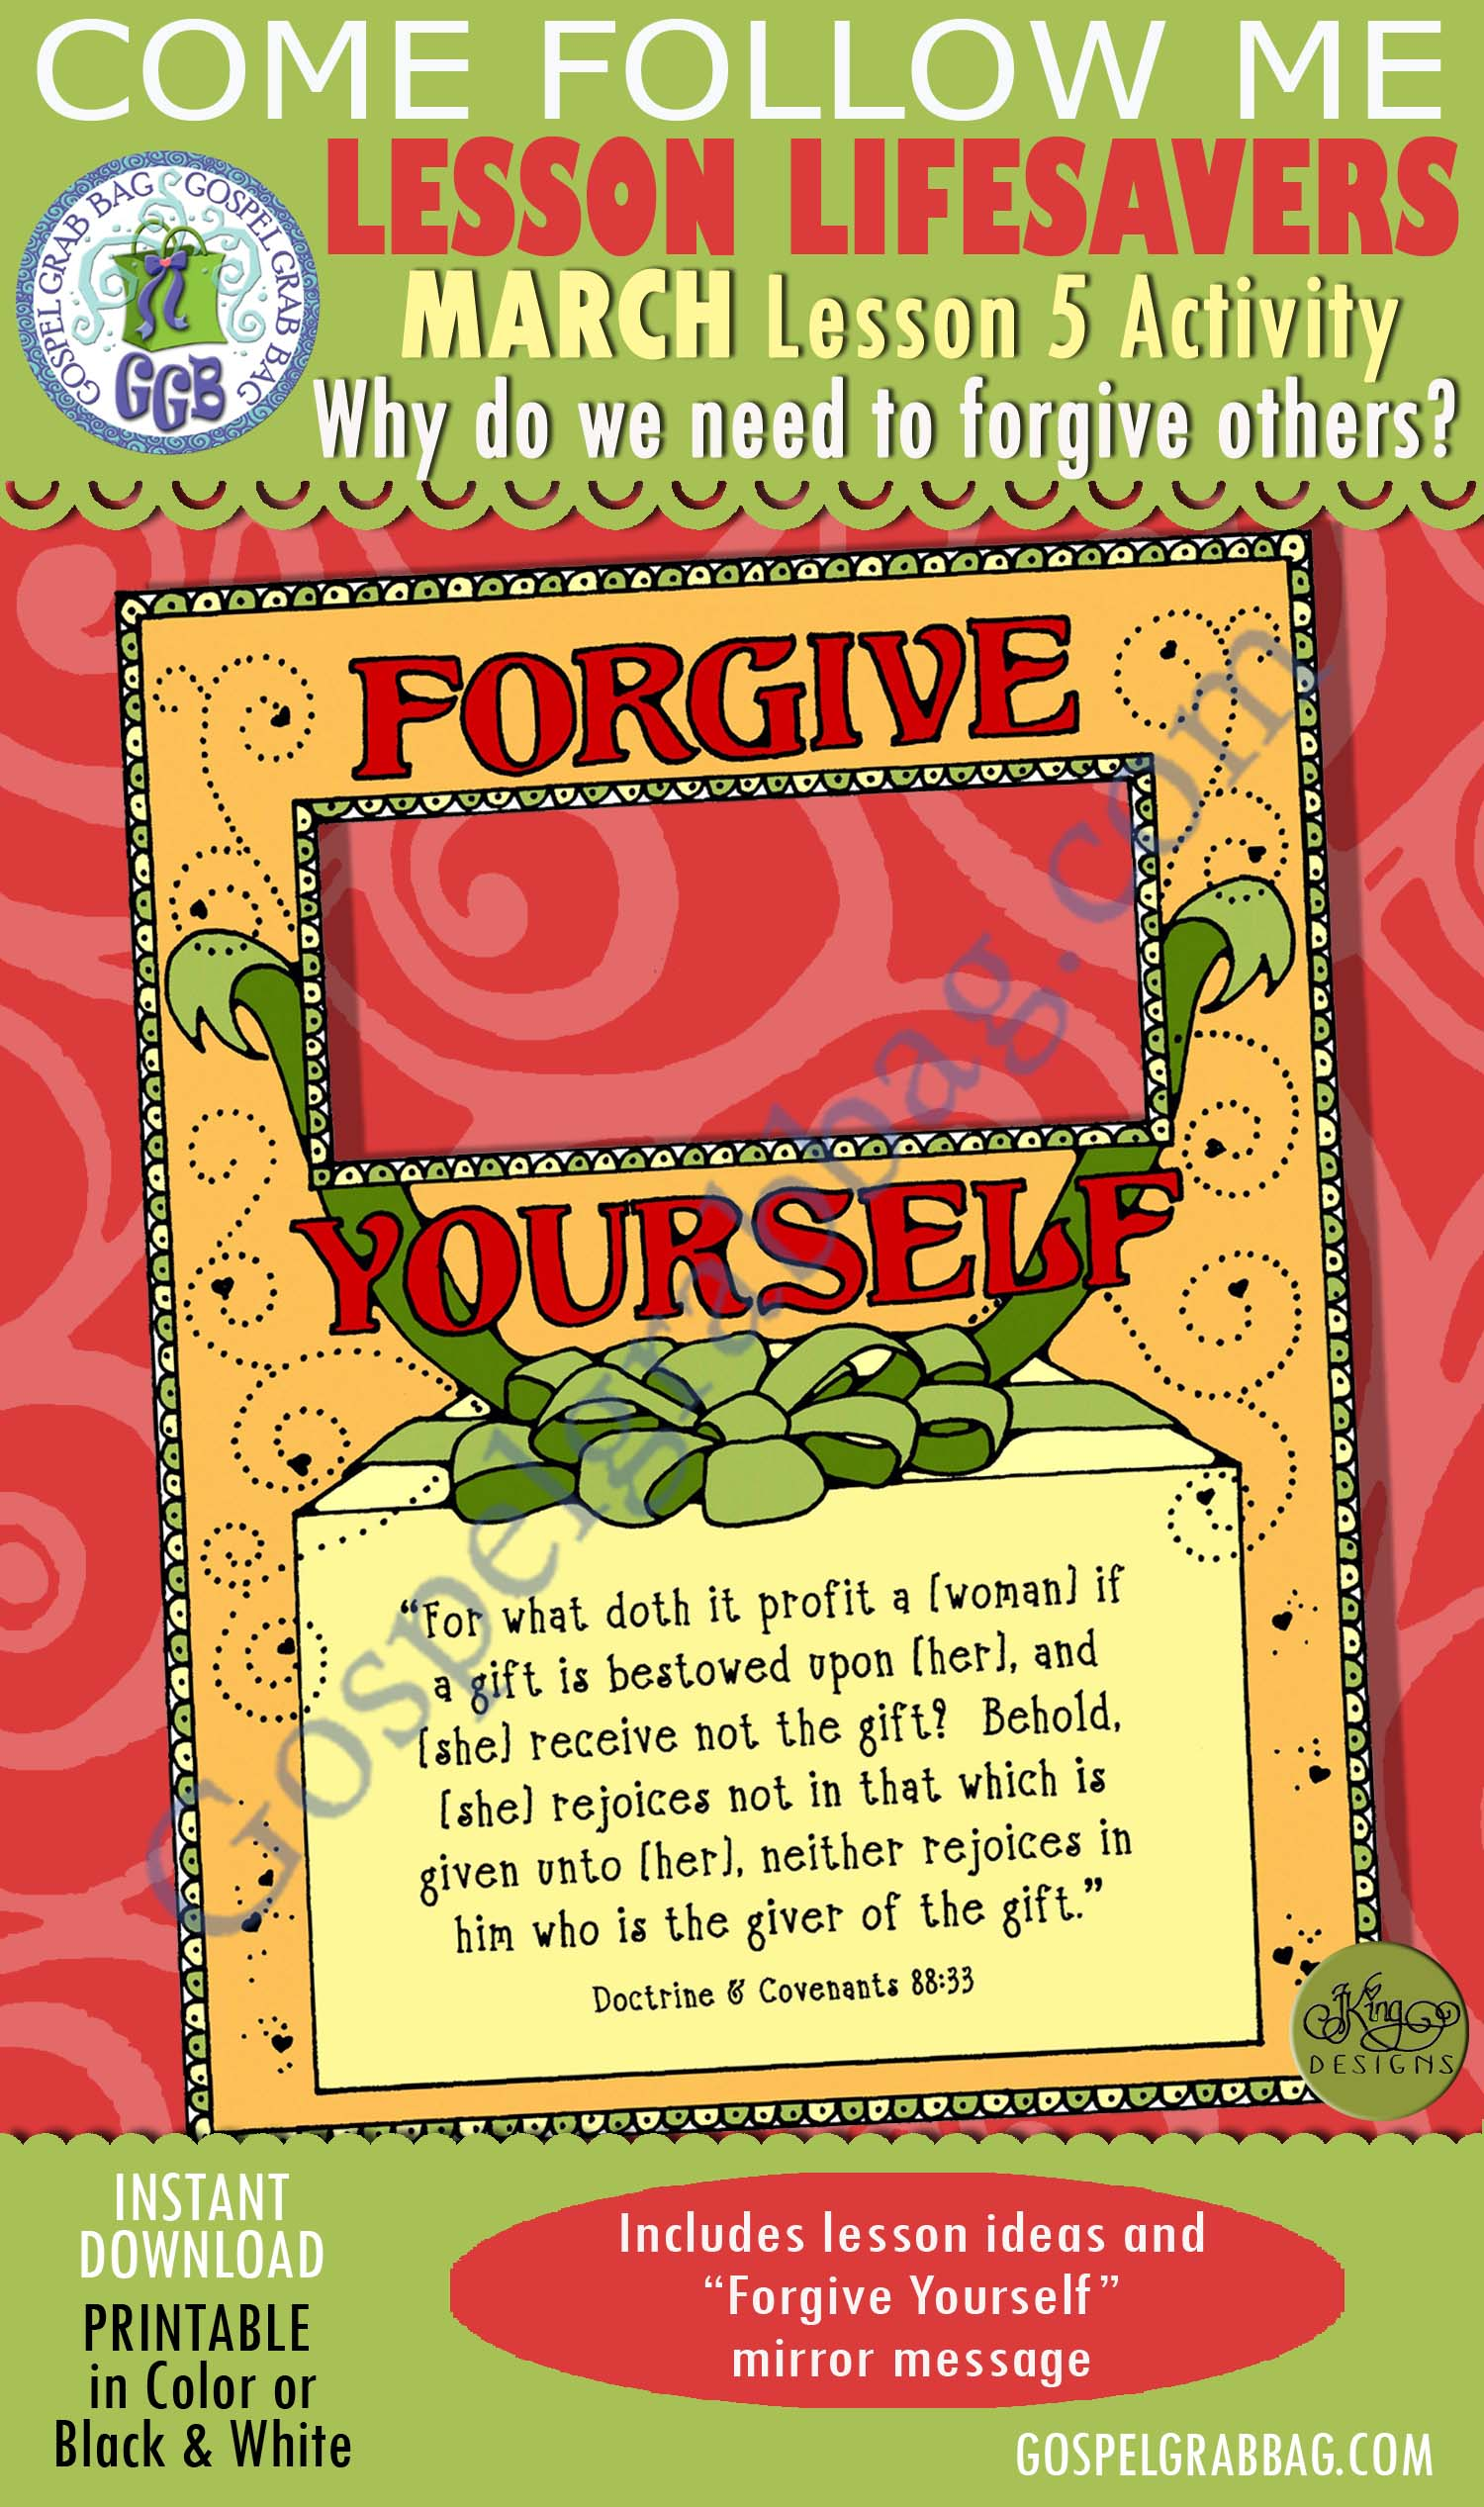 """$1.75 MARCH Lesson 5 Come Follow Me """"Why do we need to forgive others?"""" ACTIVITY: Forgive Yourself mirror motivator, Young Women handouts, GospelGrabBag.com"""